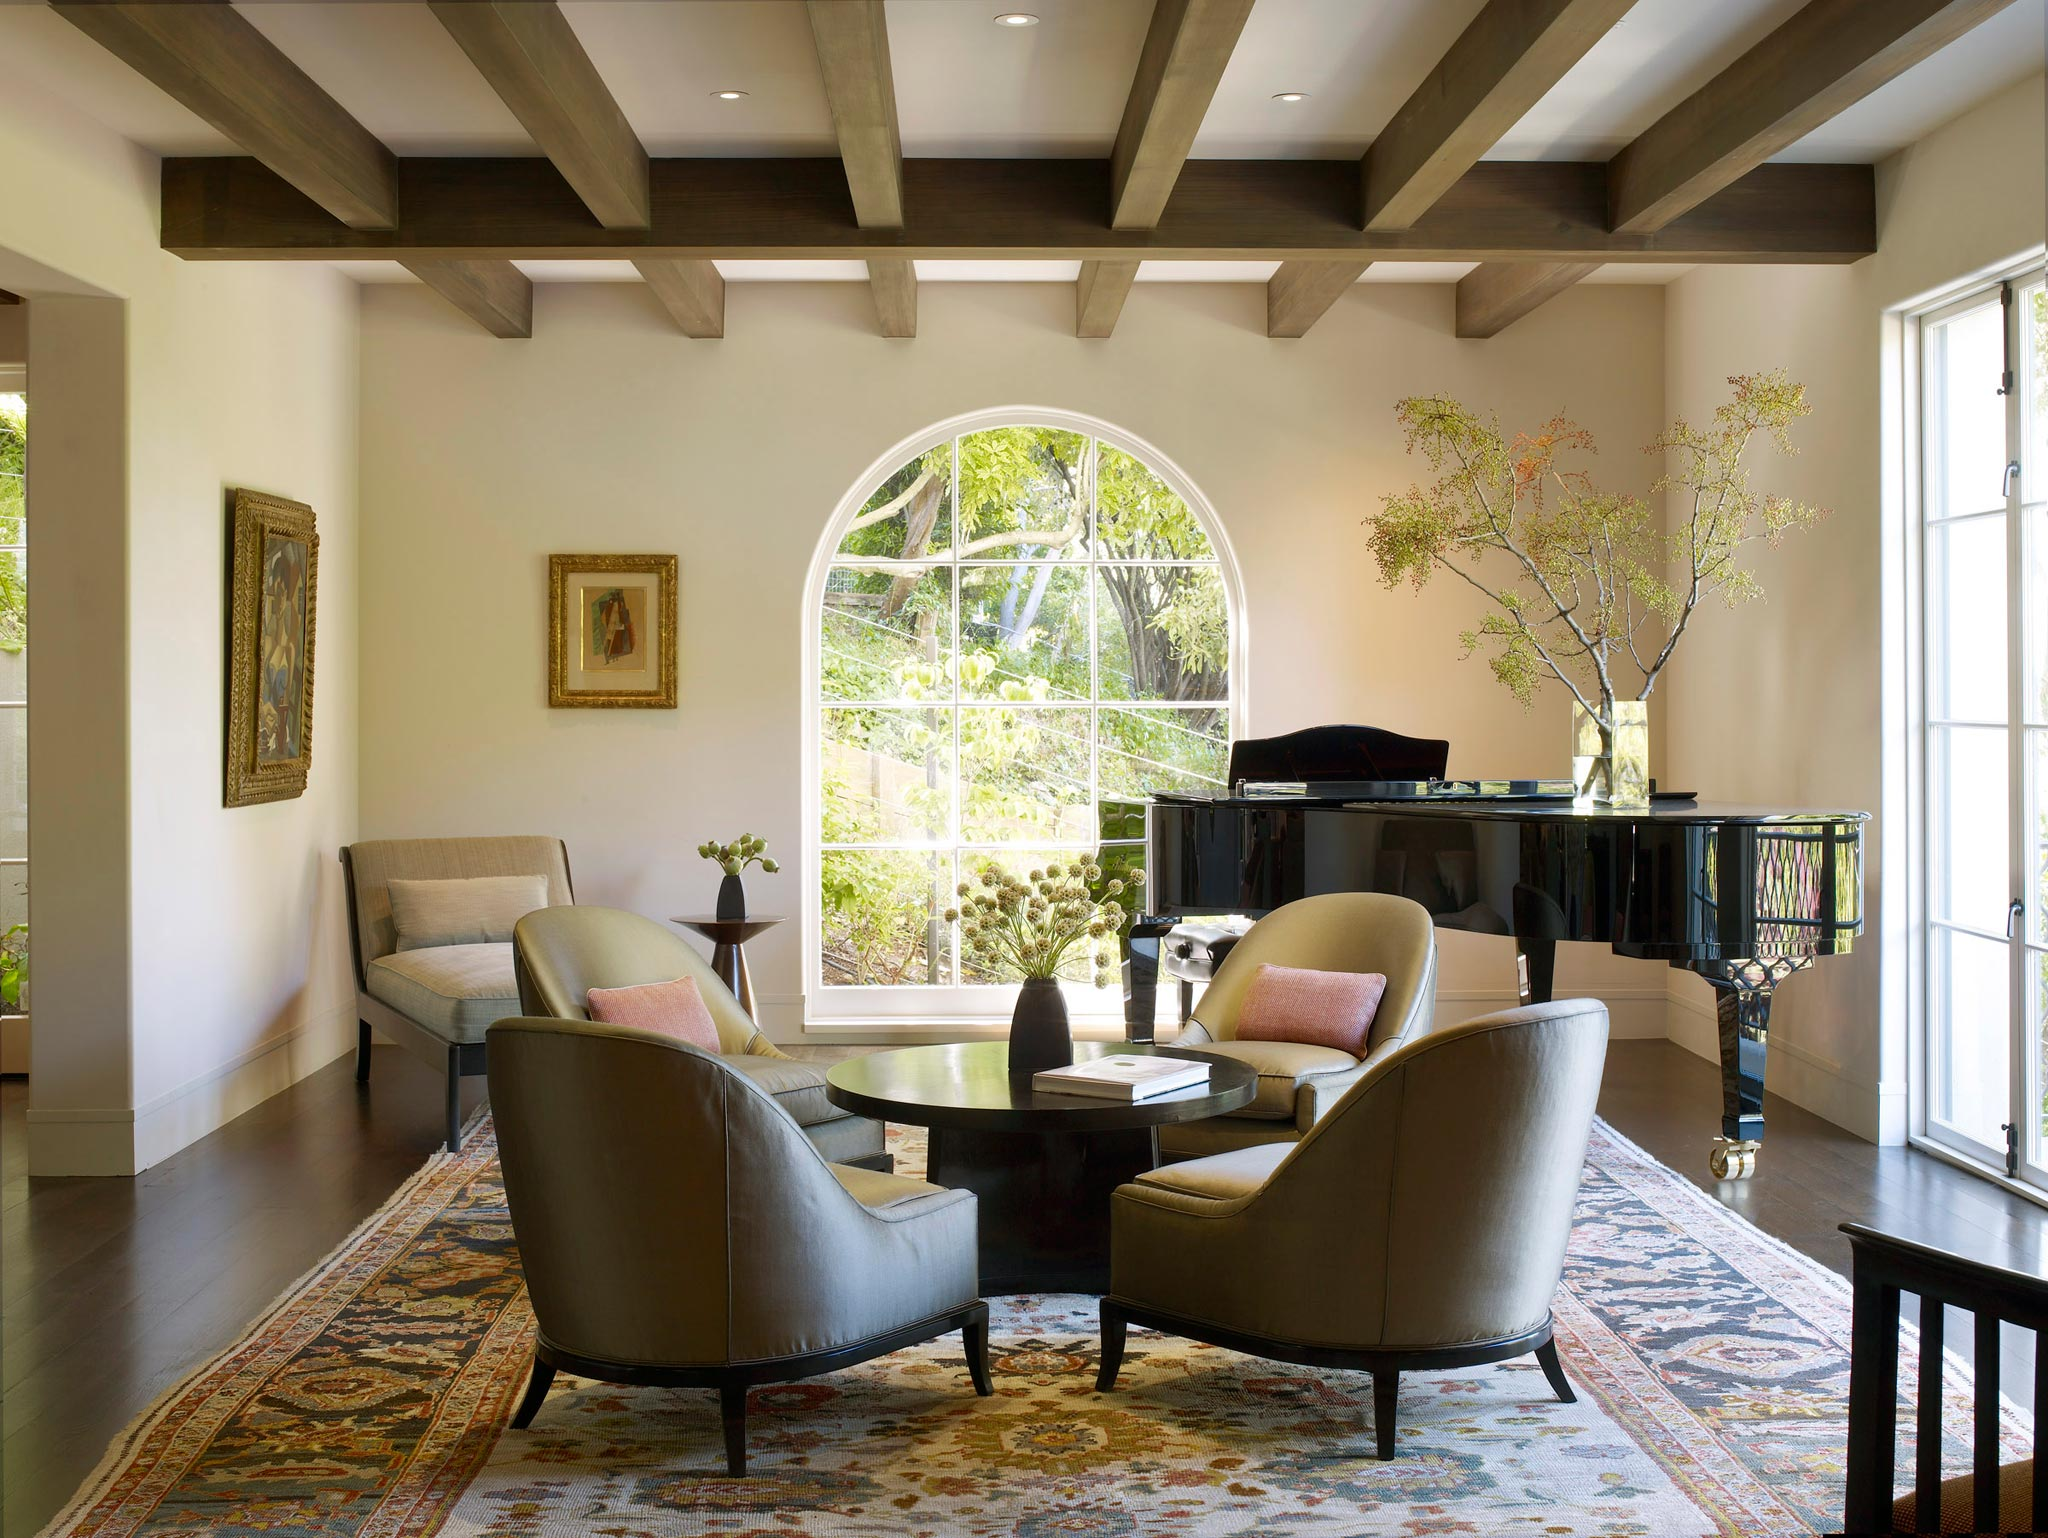 Claremont modern aesthetic pavillon house interior view of living space with piano